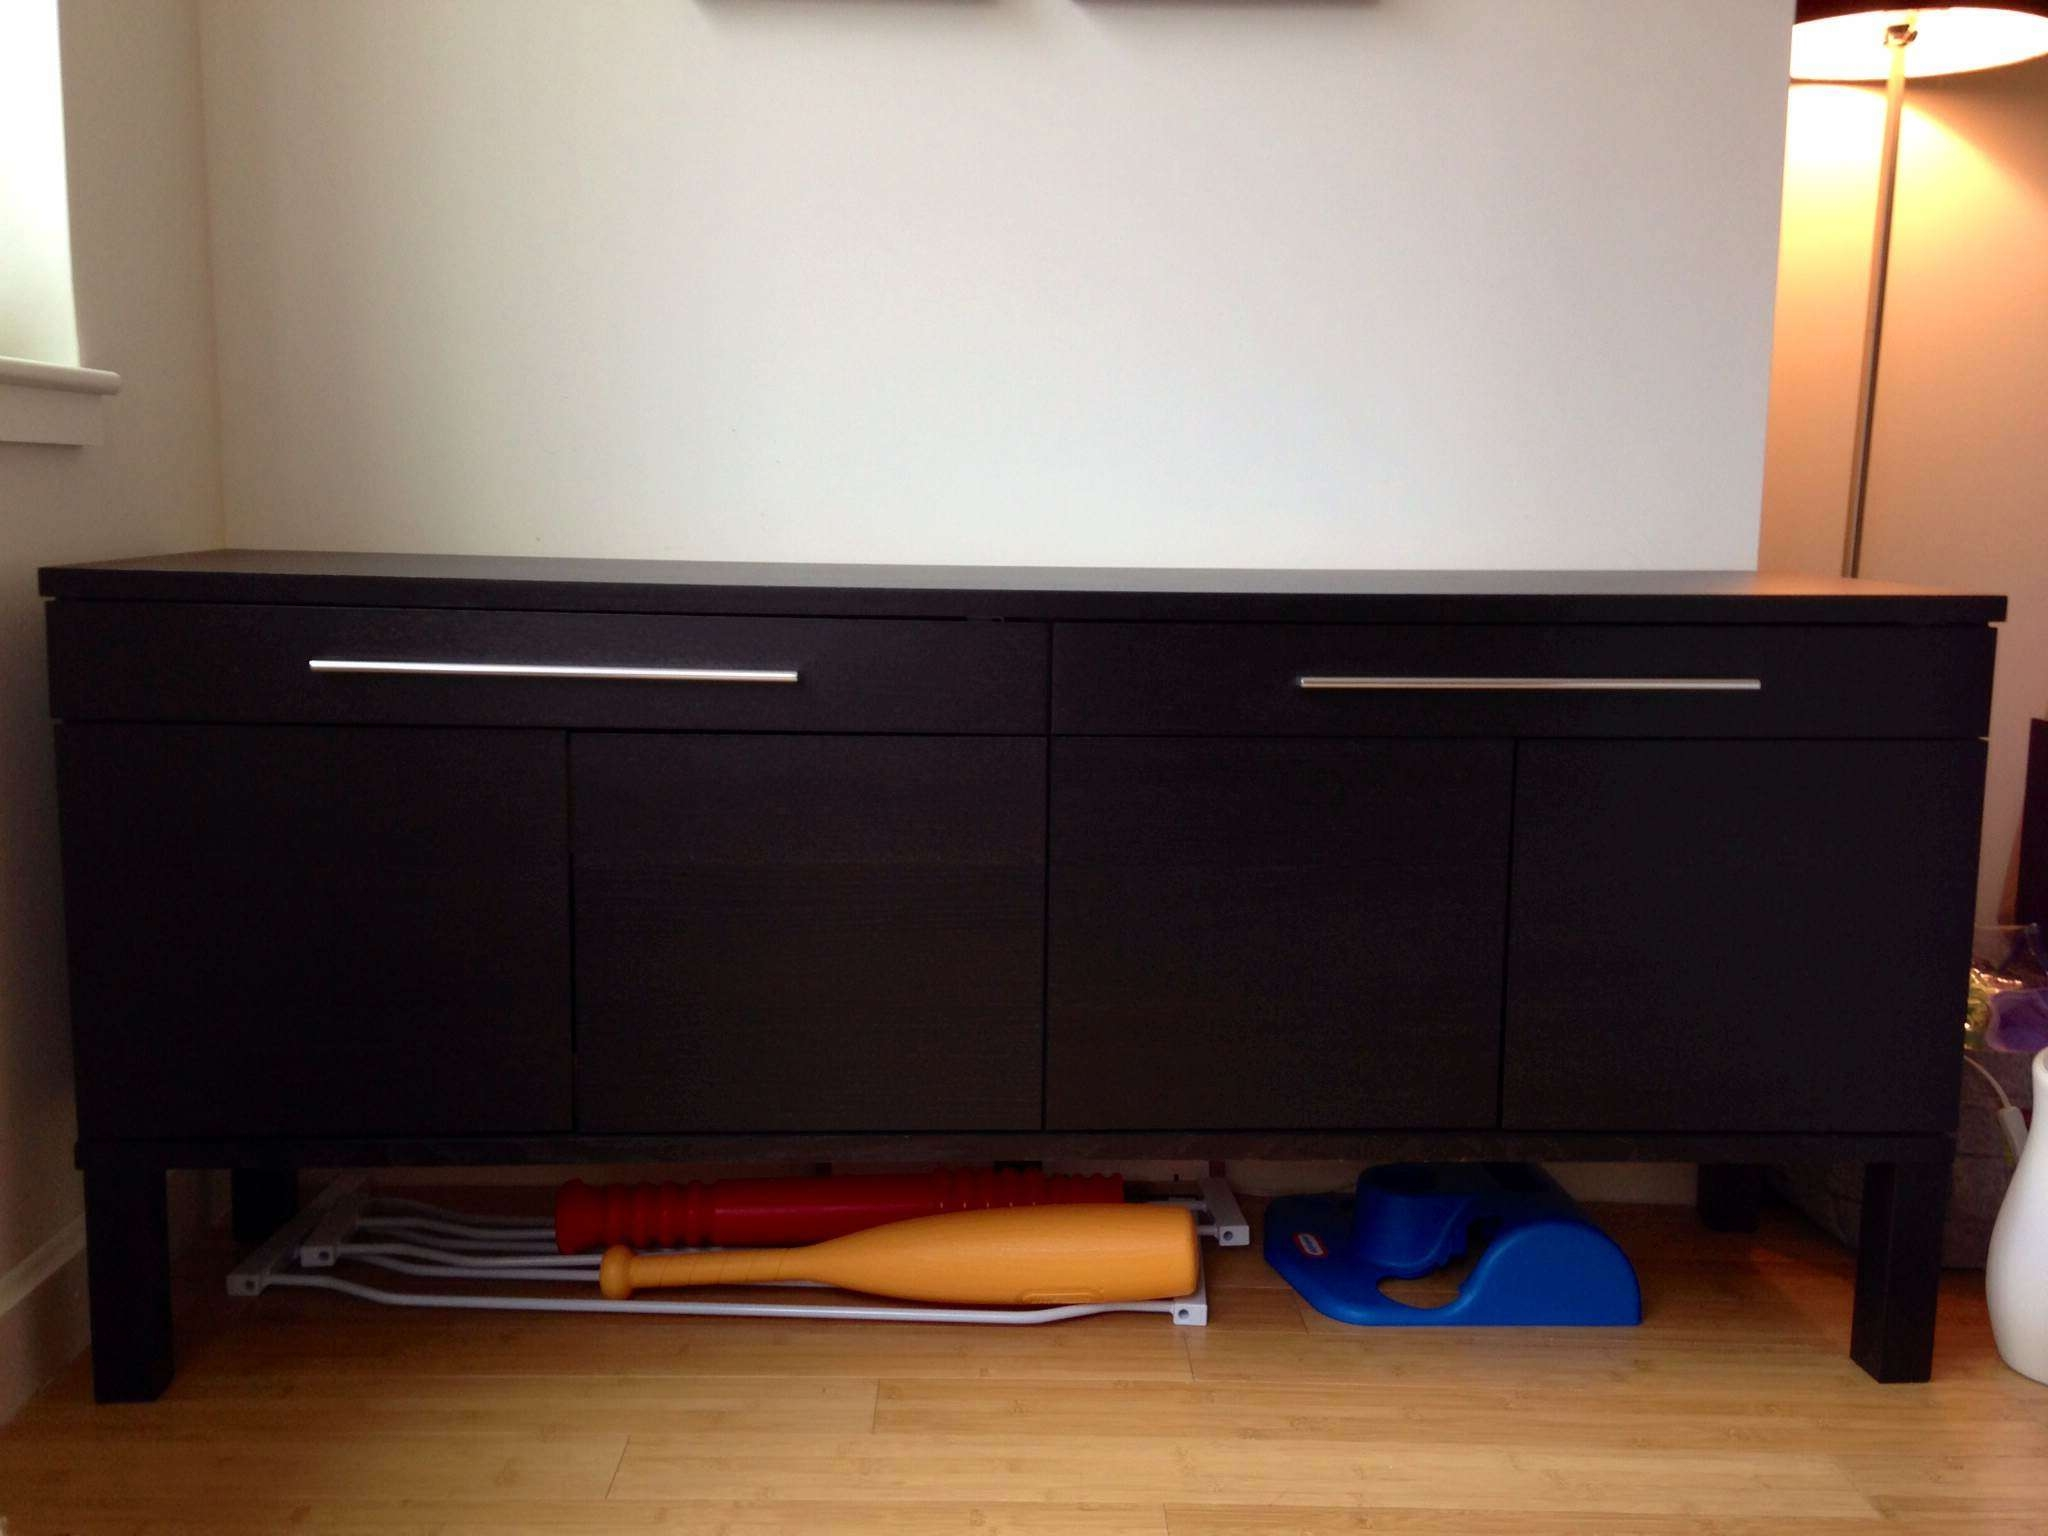 Ikea Bjursta Sideboard Dining Storage, Dark Brown – $100 | Too Big Throughout Ikea Bjursta Sideboards (View 4 of 20)